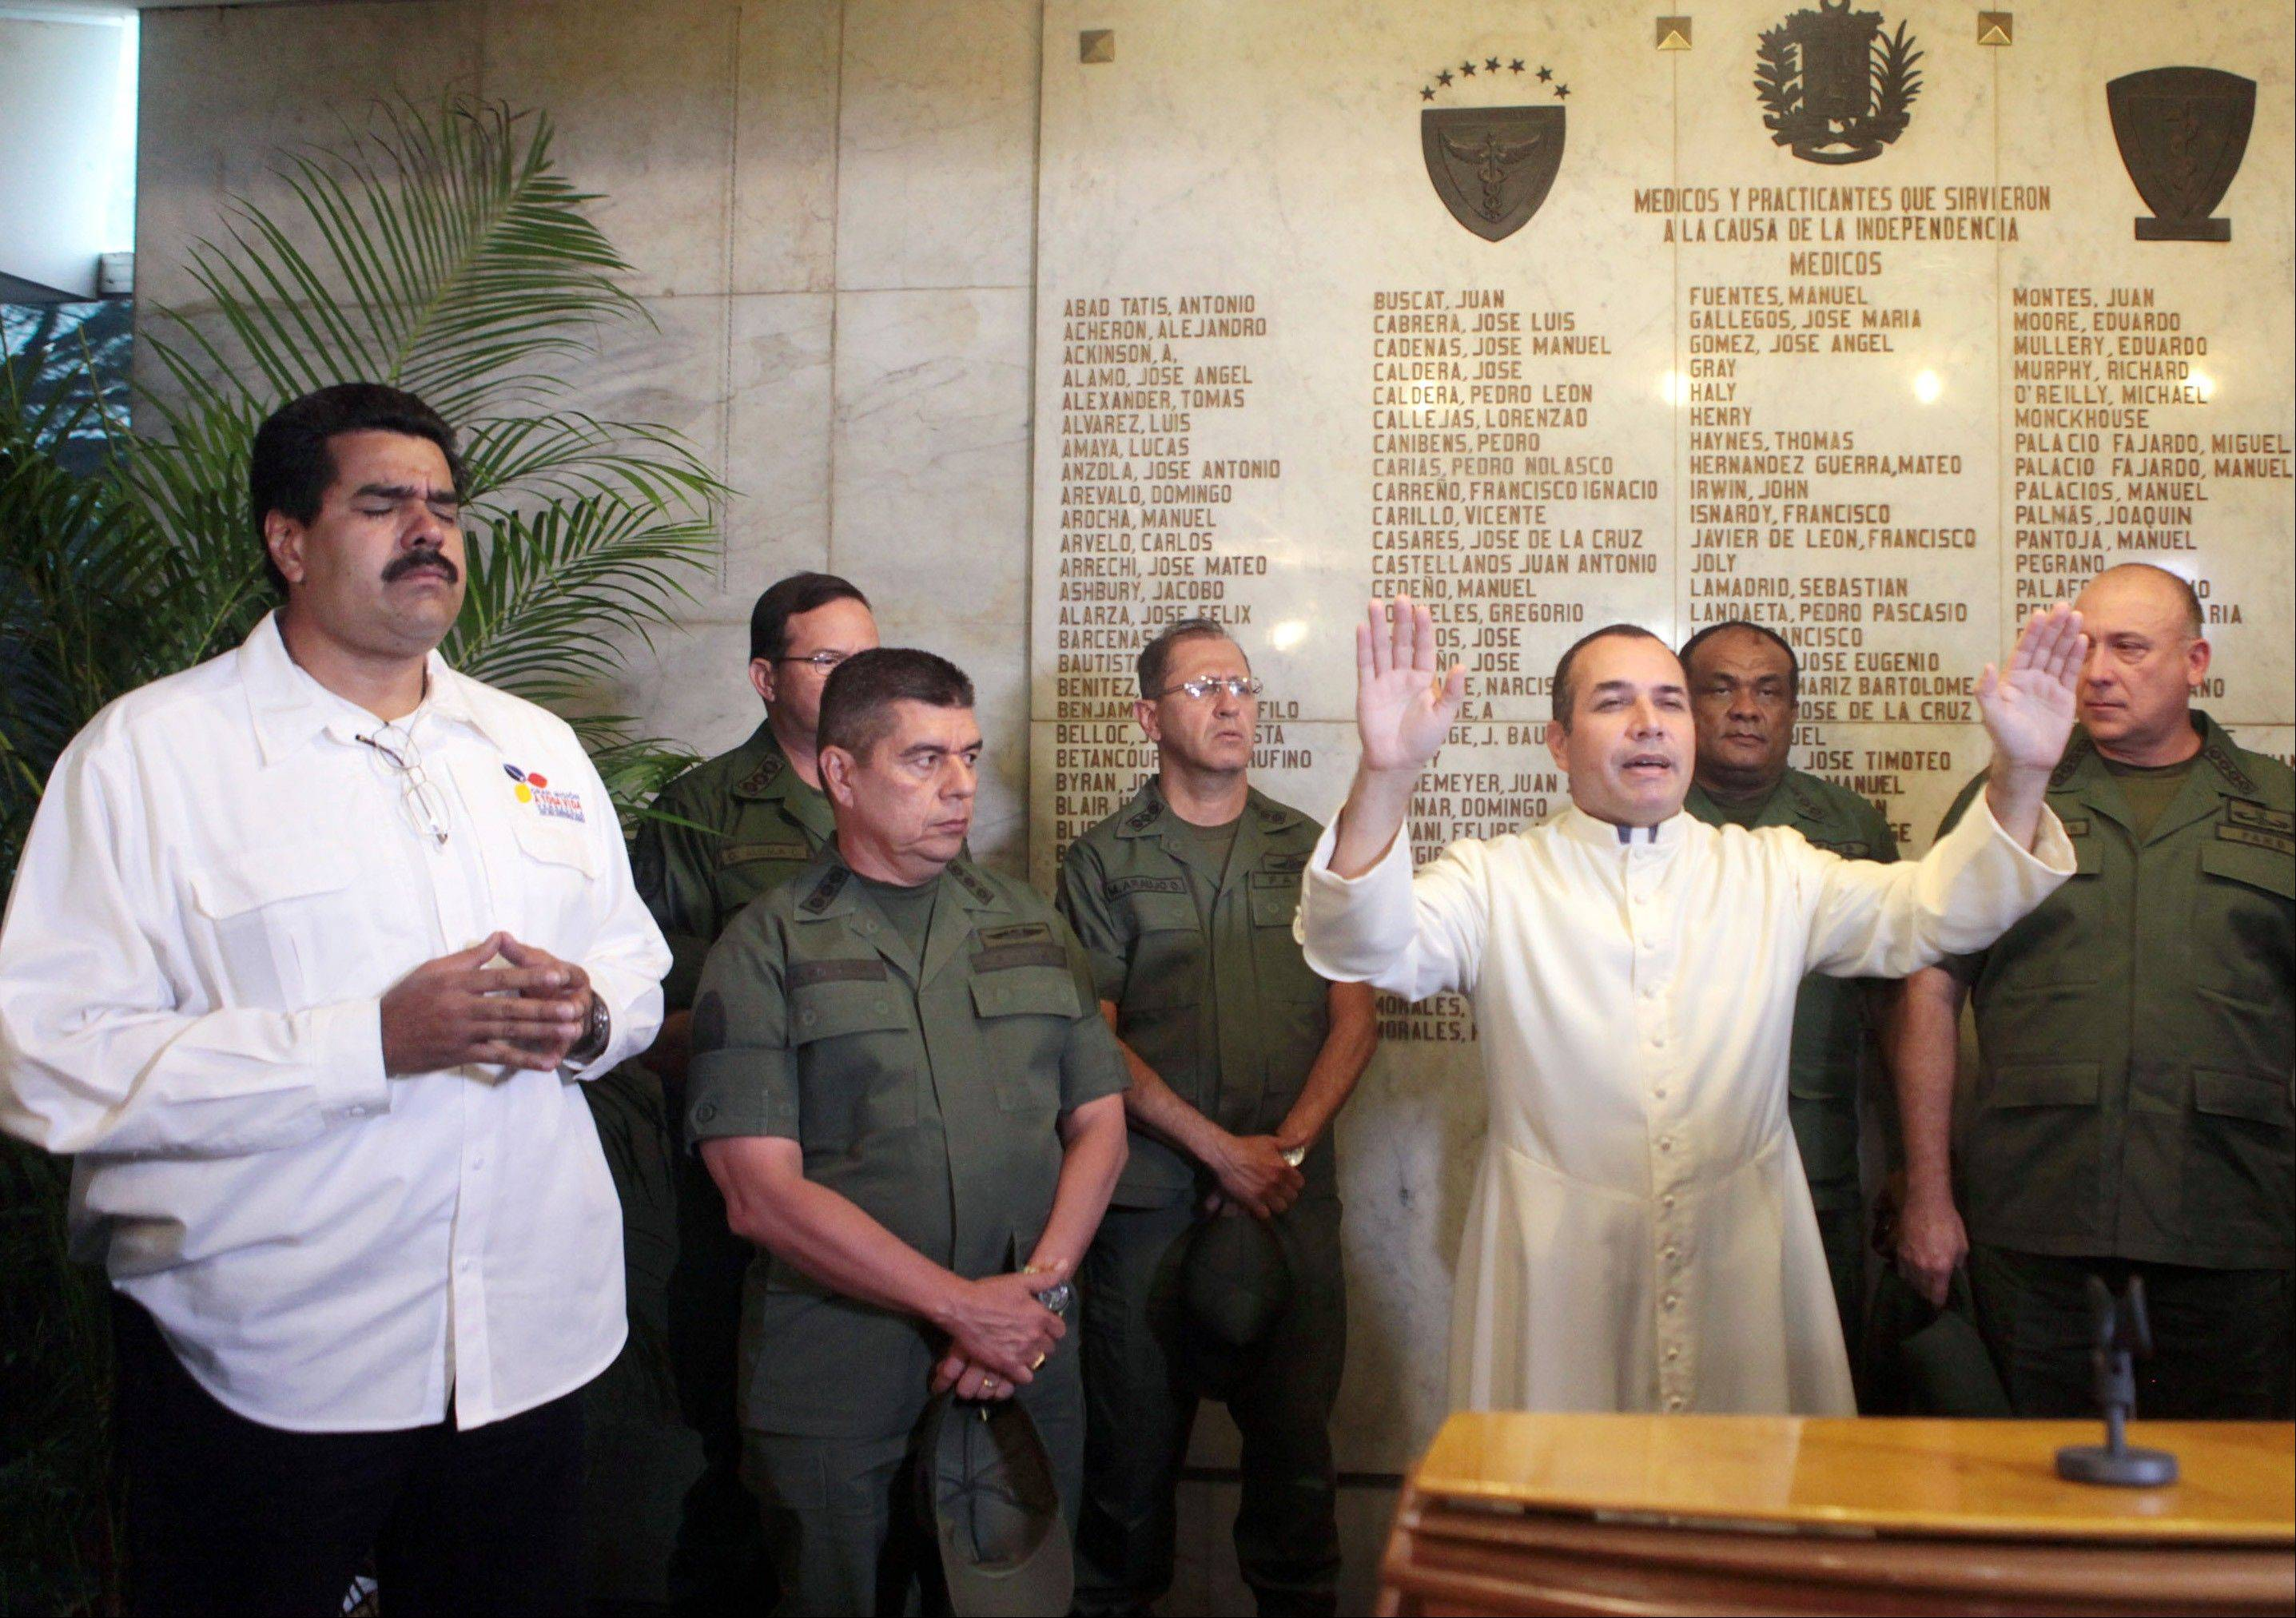 In this photo released by Miraflores Presidential Press Office, a priest prays next to Venezuela's Vice President Nicolas Maduro, left, and military officers after Maduro addressed the nation to announce the death of President Hugo Chavez in Caracas, Venezuela.